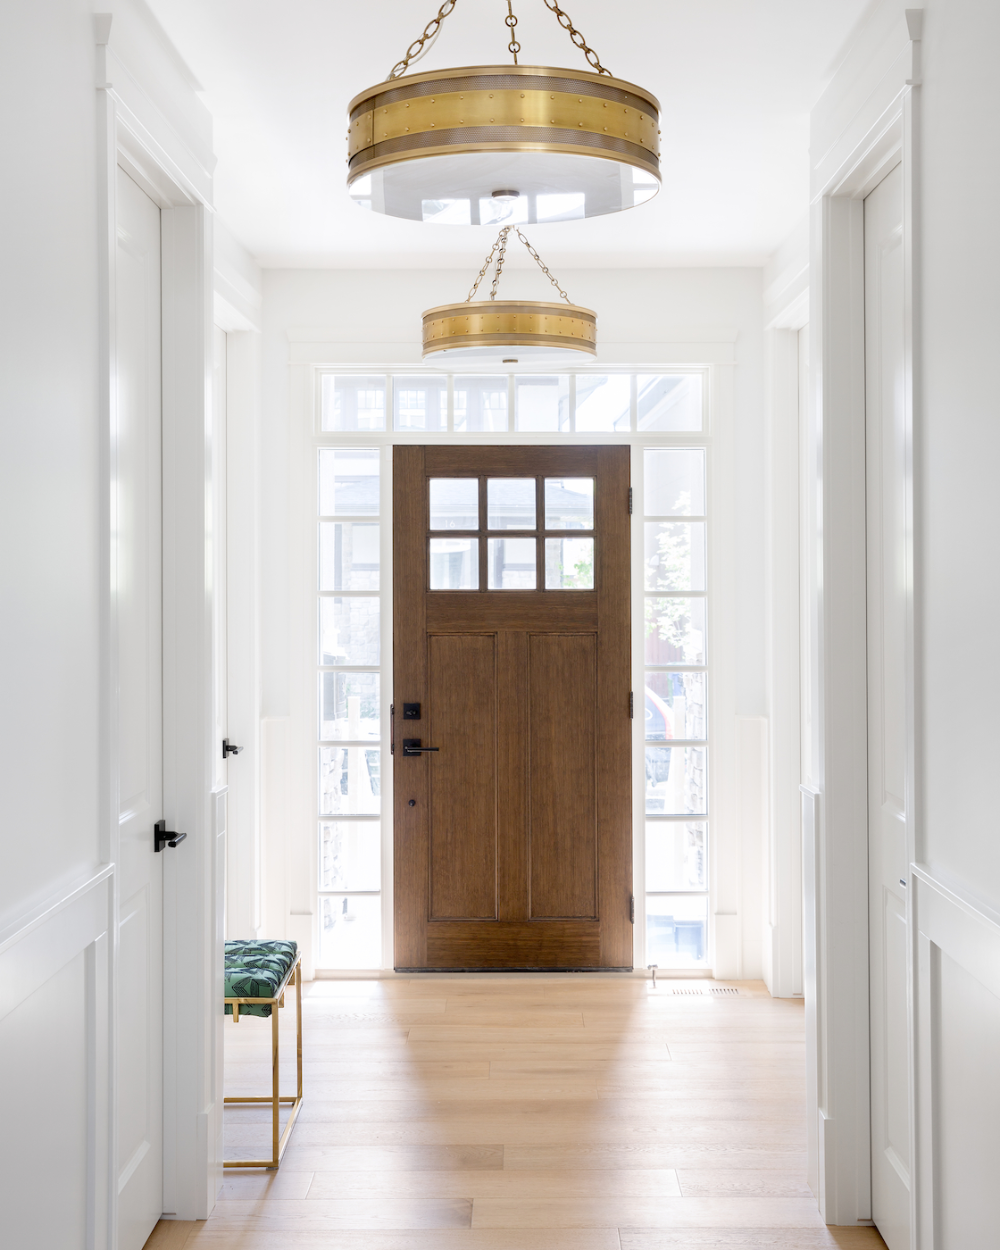 Entryway With Brass Hudson Valley Gaines Pendants Calgary Interior Design By Reena Sotropa Home Online Home Decor Stores Home Decor